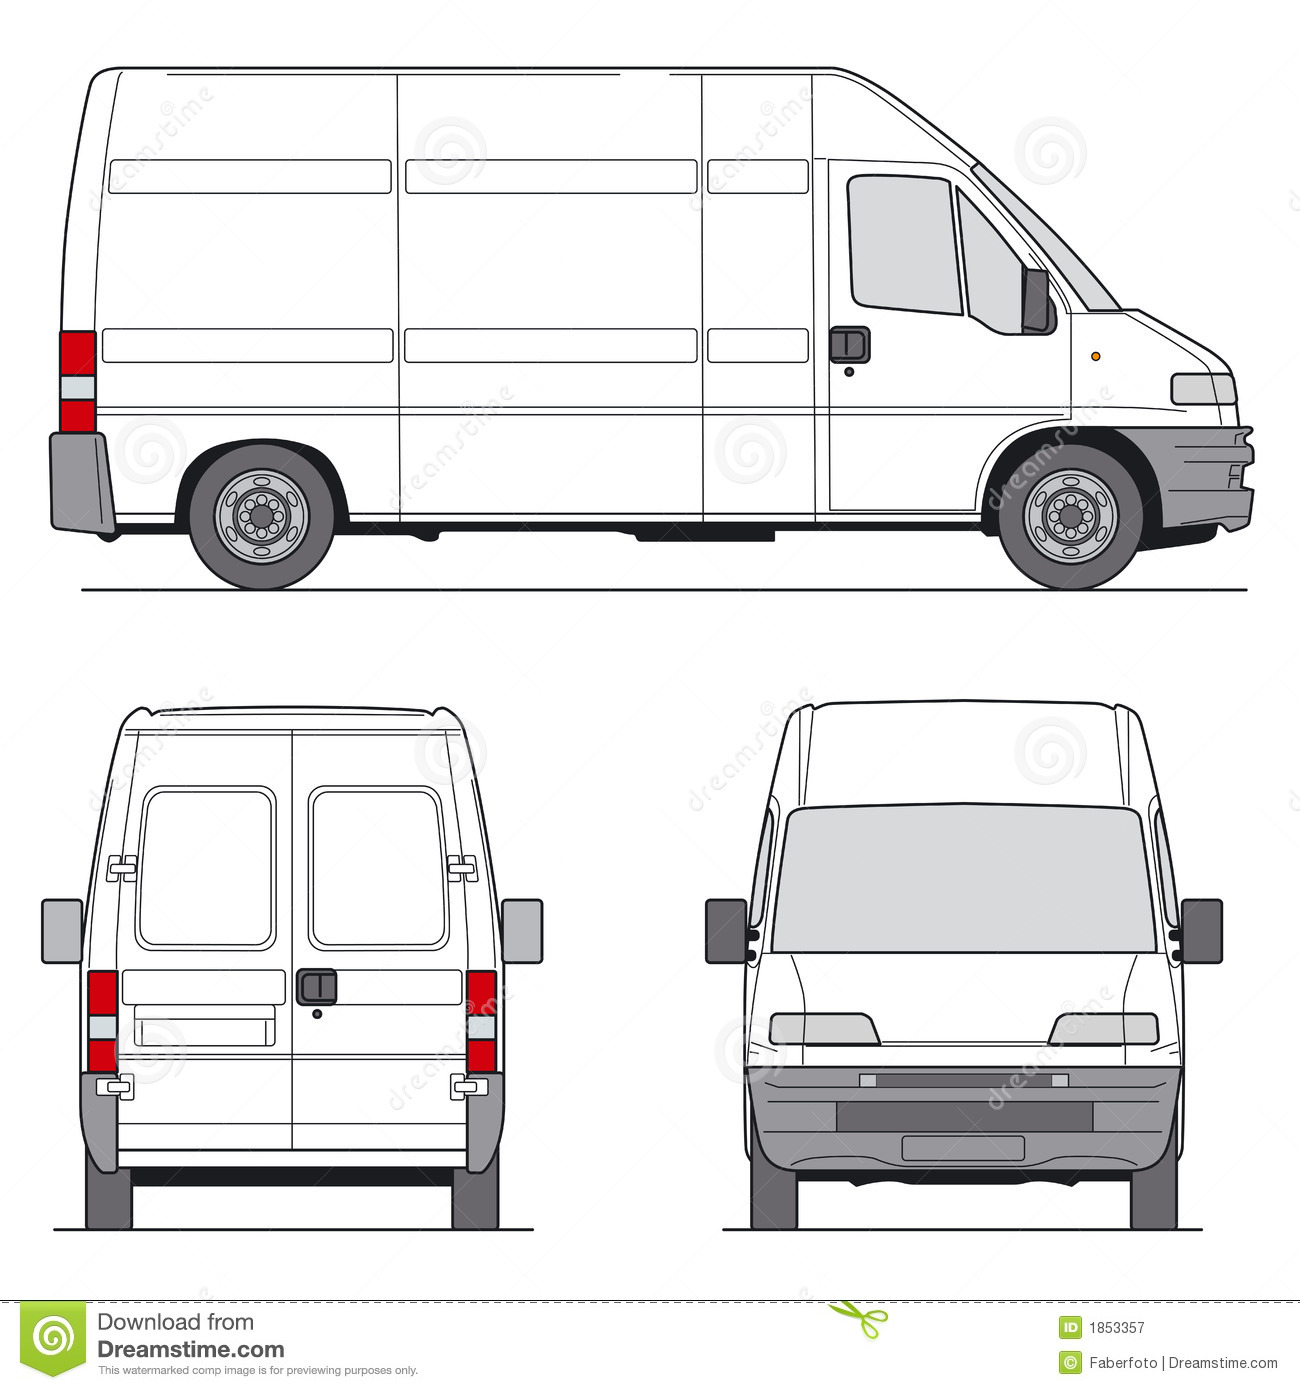 Van Vector Royalty Free Stock Photo